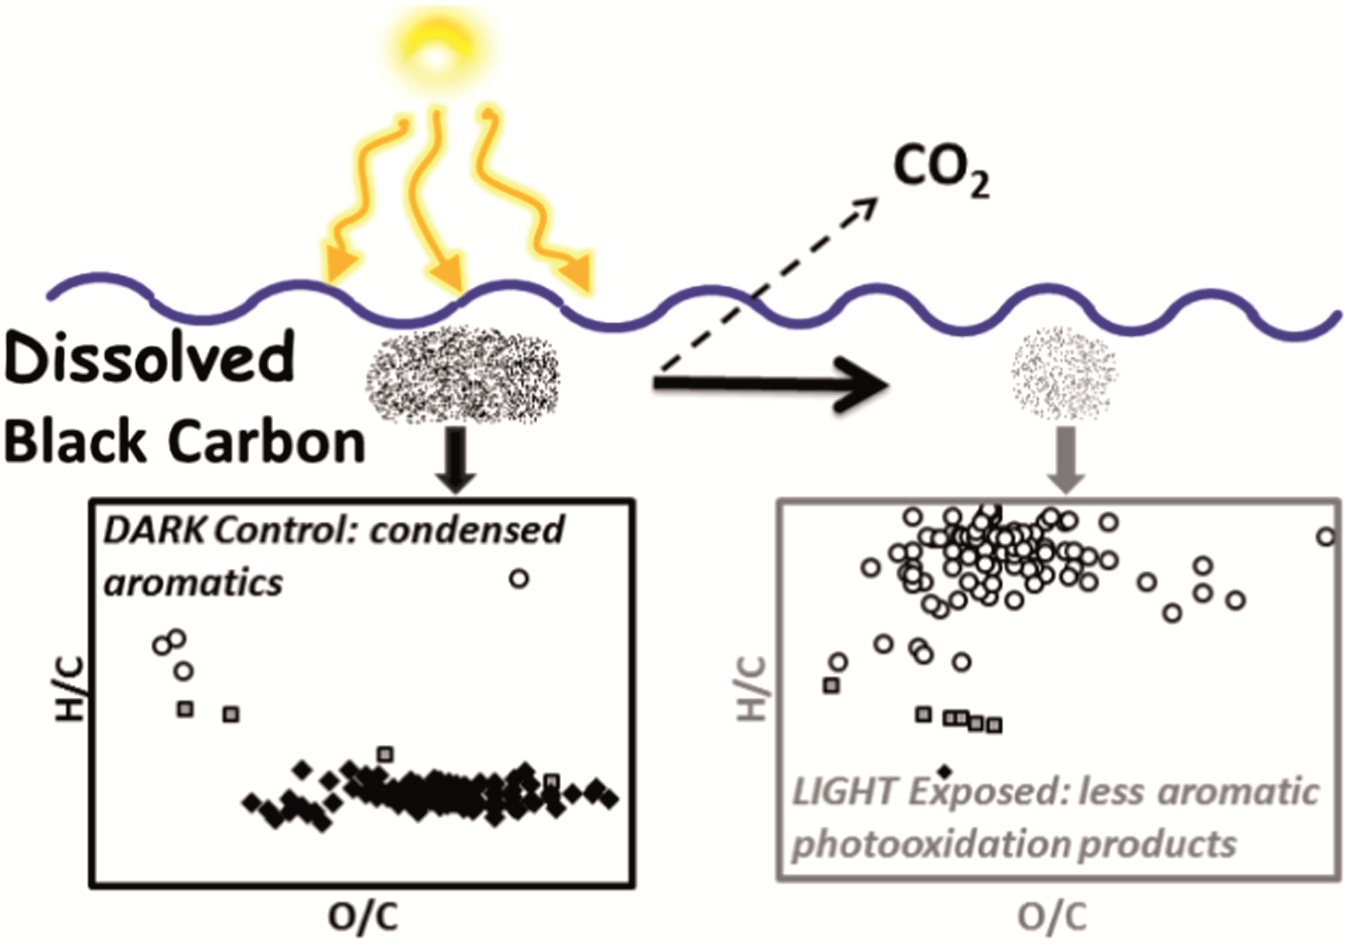 Shedding Light On The Degradation Of Black Carbon In